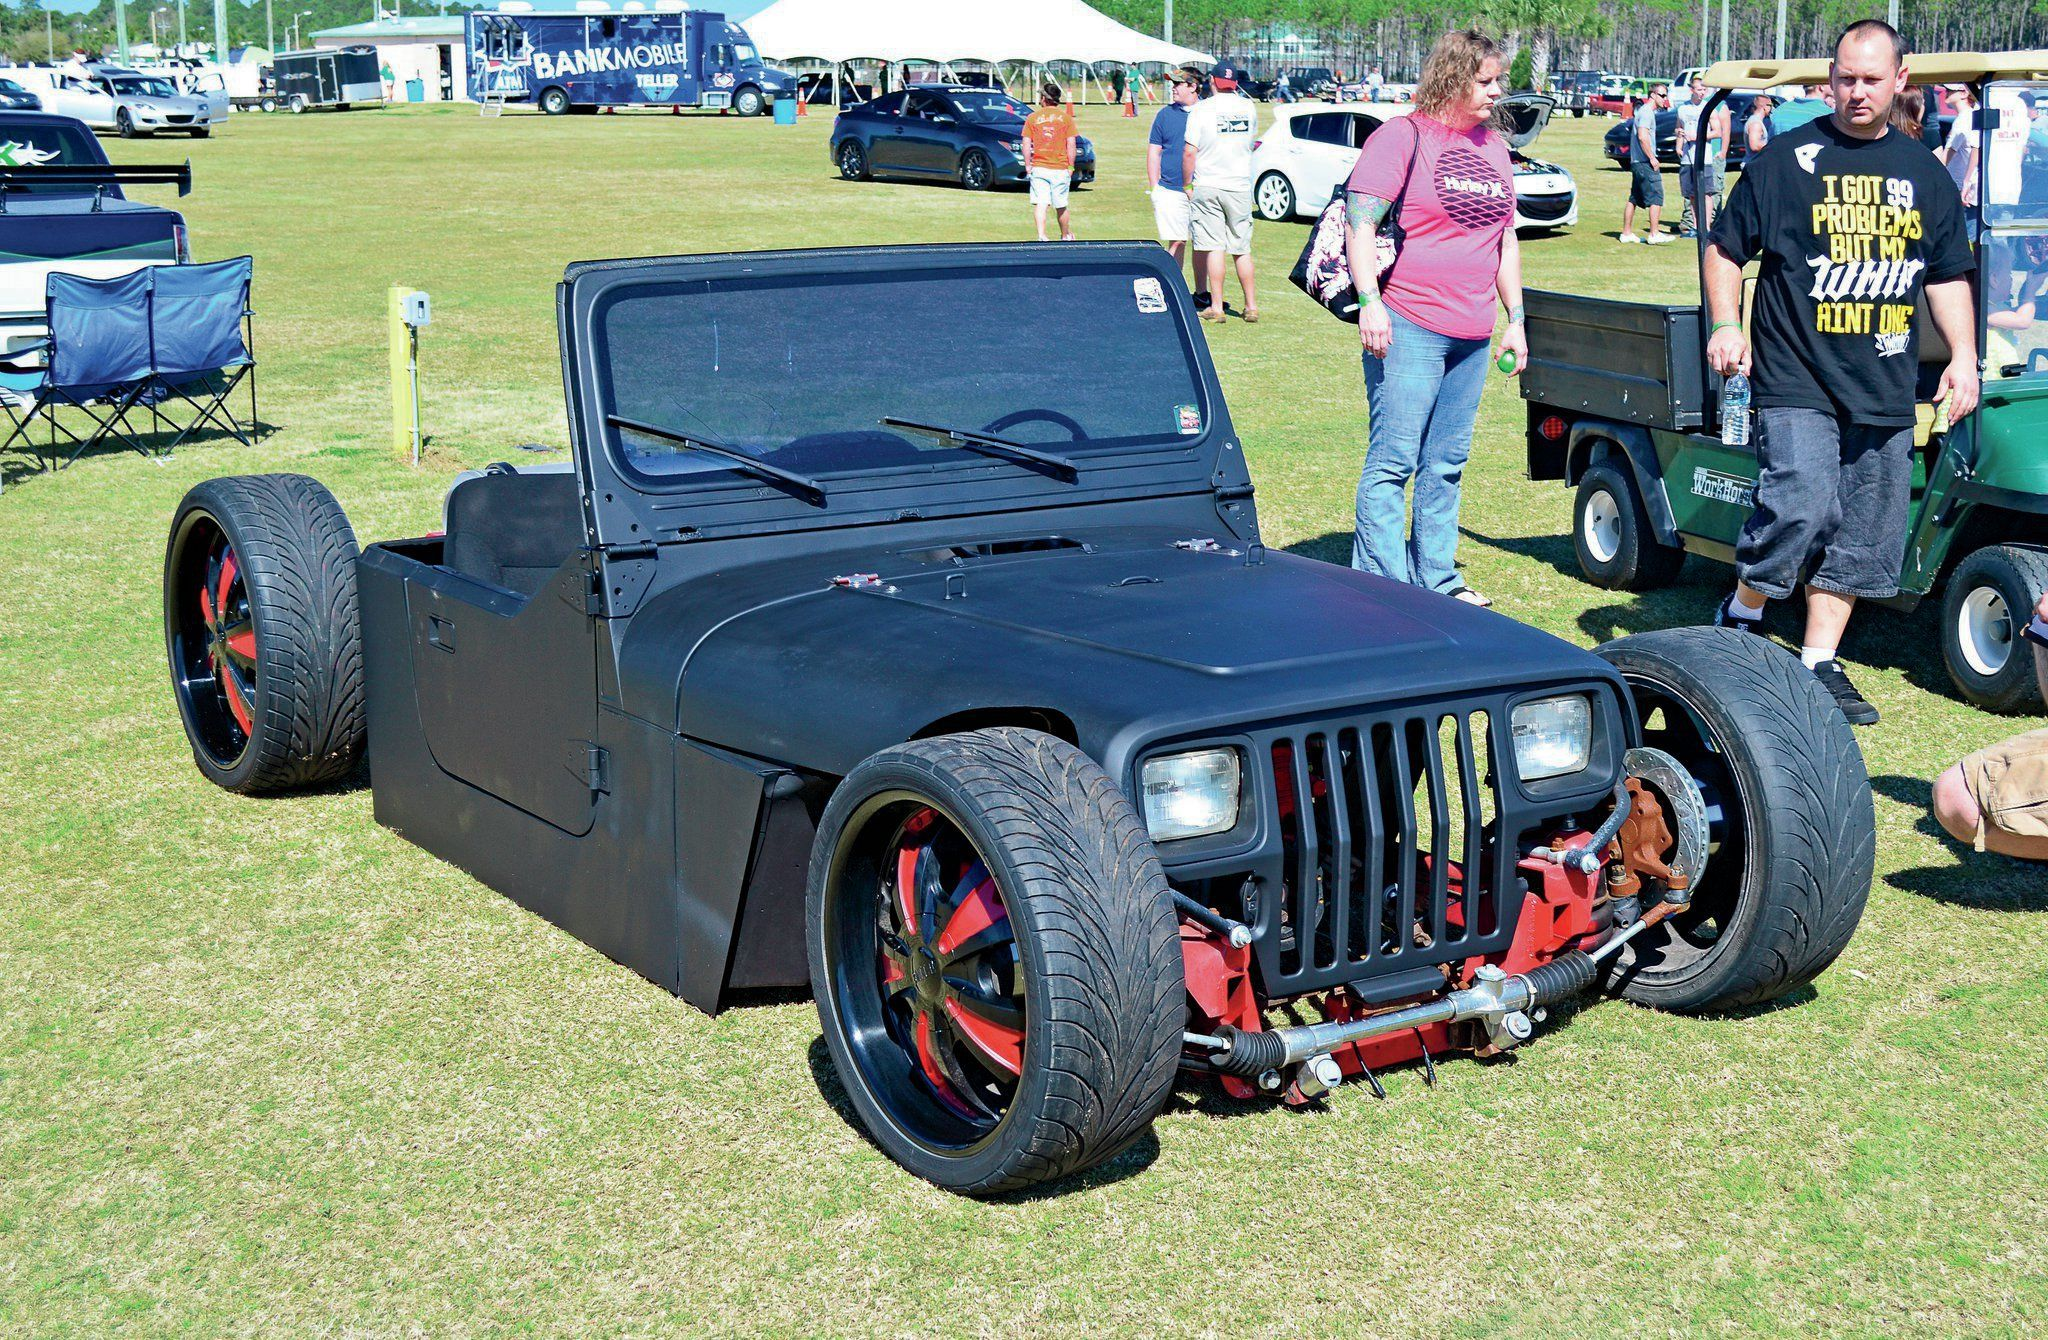 French Jeep Build Packs Vintage Hot Rod Flair